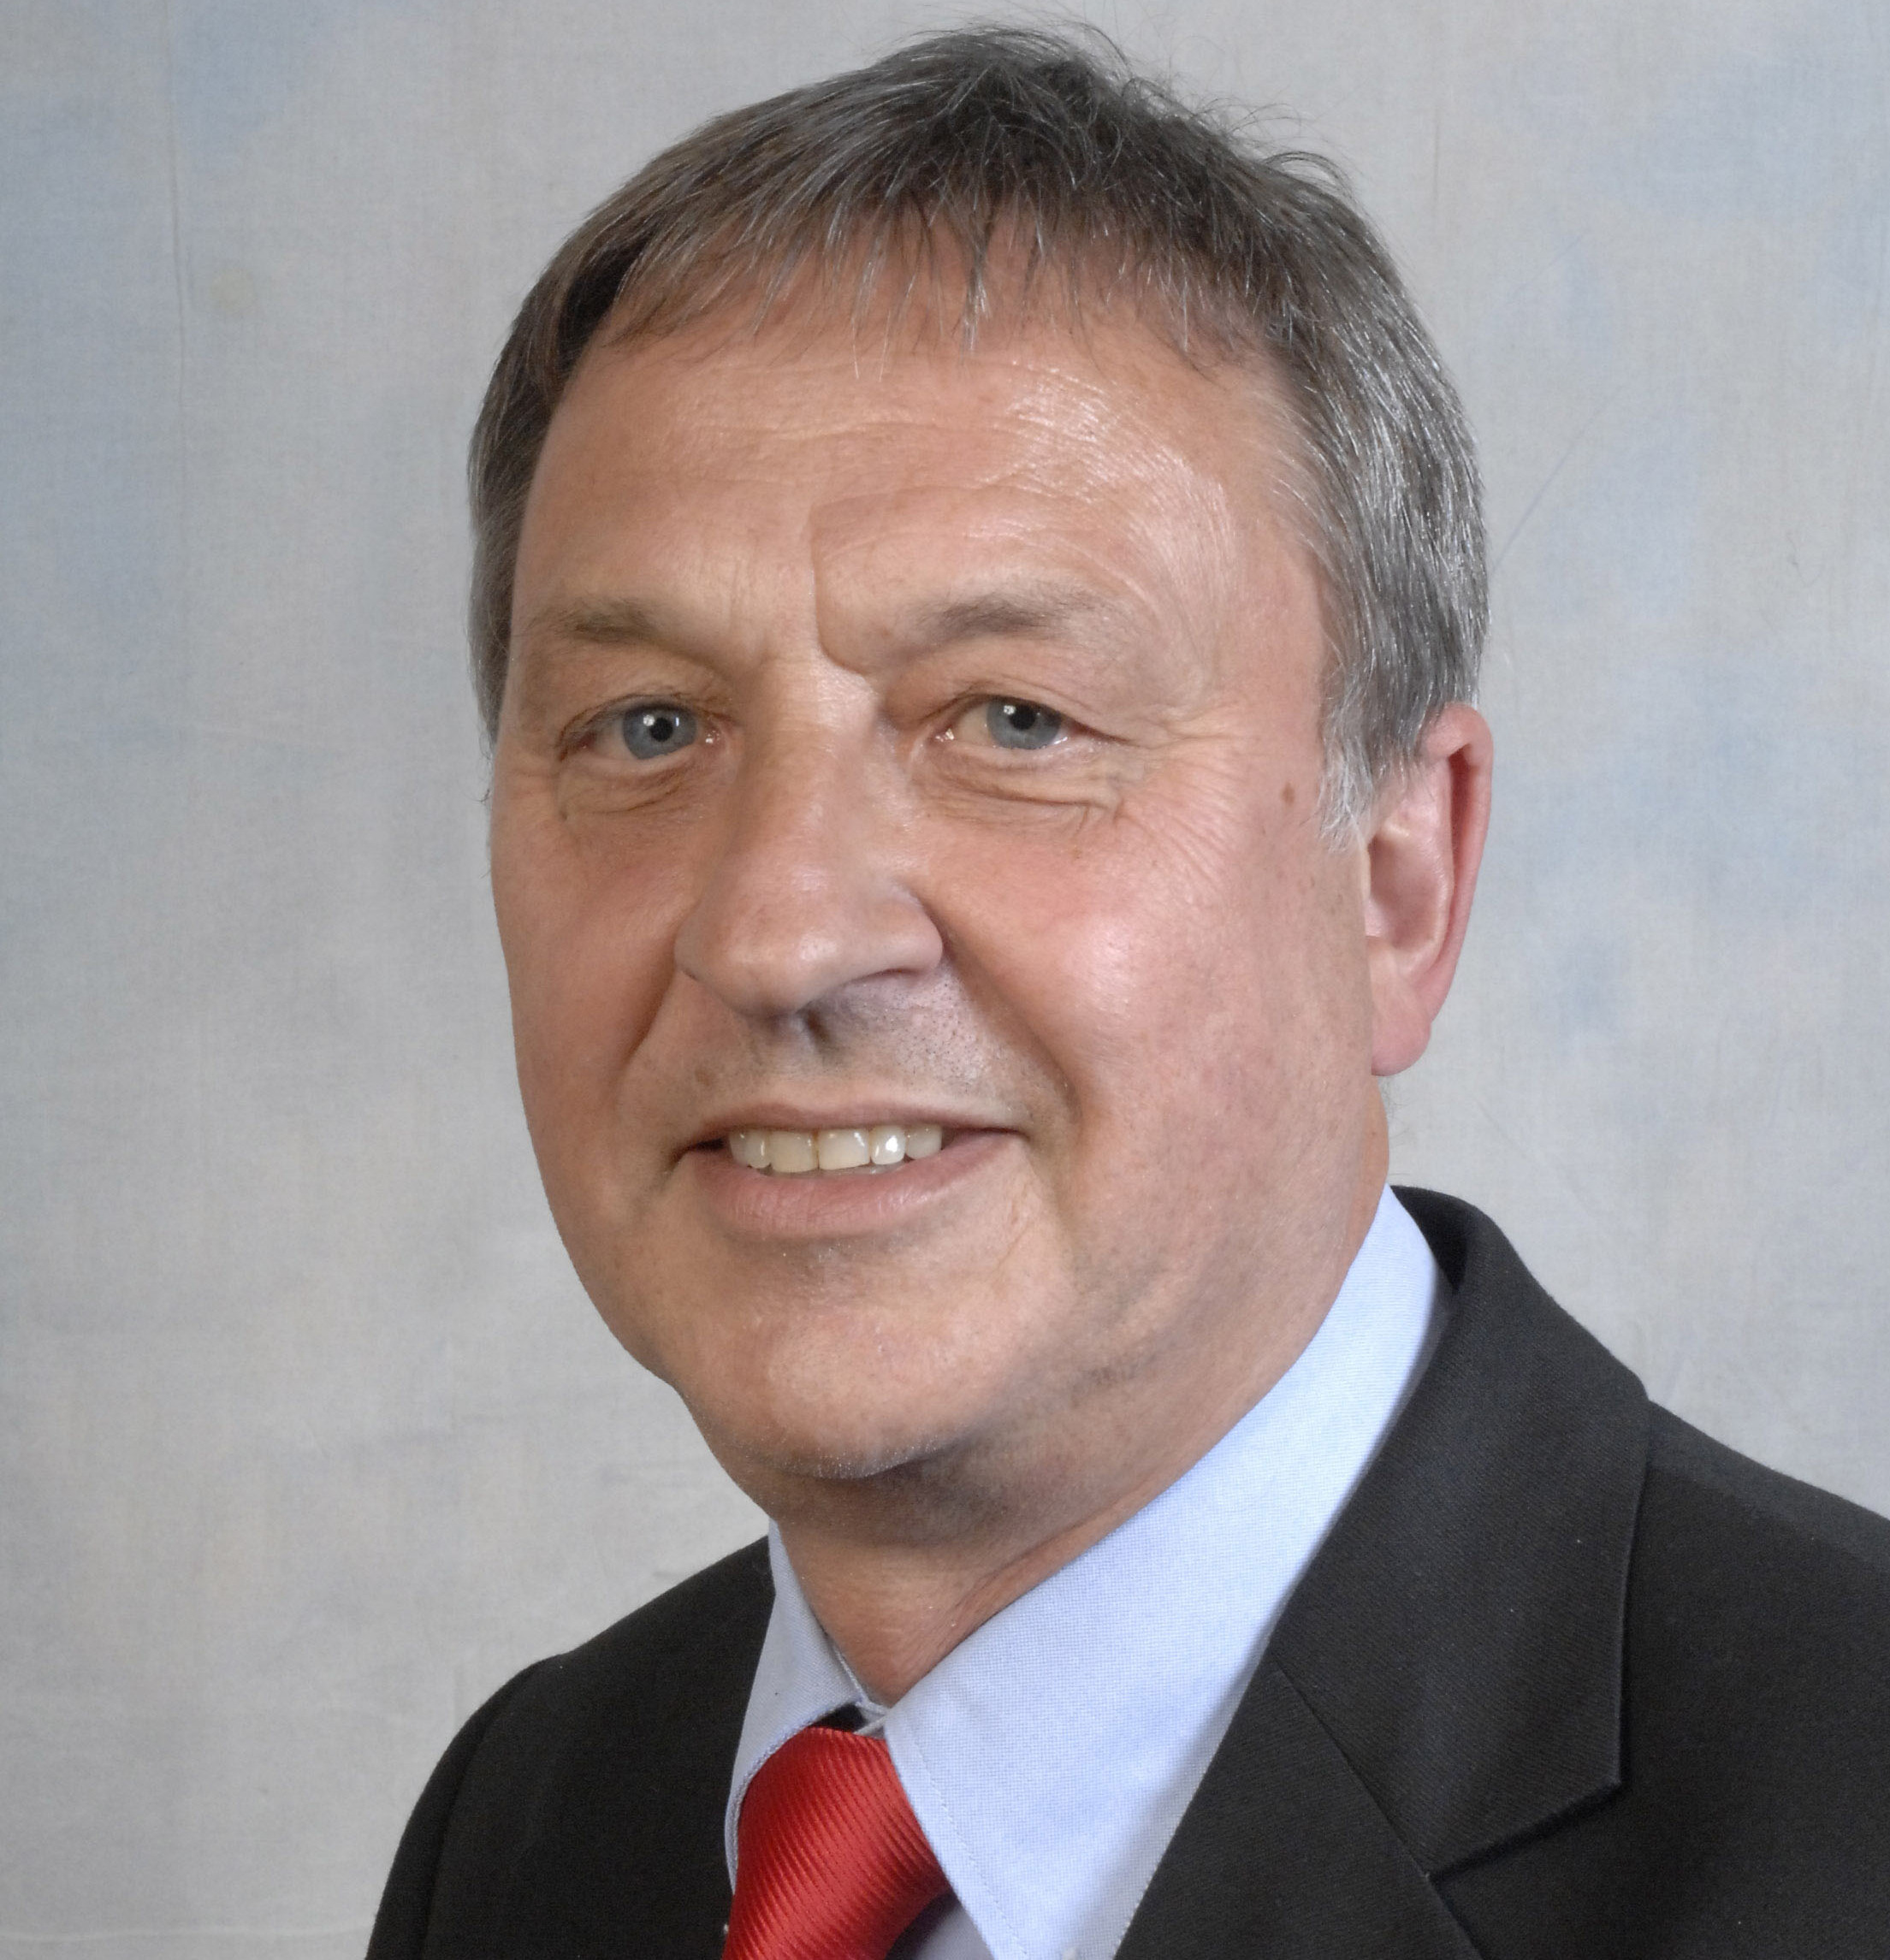 PUBLIC MEETINGS: Leader of the Vale Council Cllr Neil Moore said that Cabinet members didn't attend public meetings outside of the LDP process as they didn't have the resources